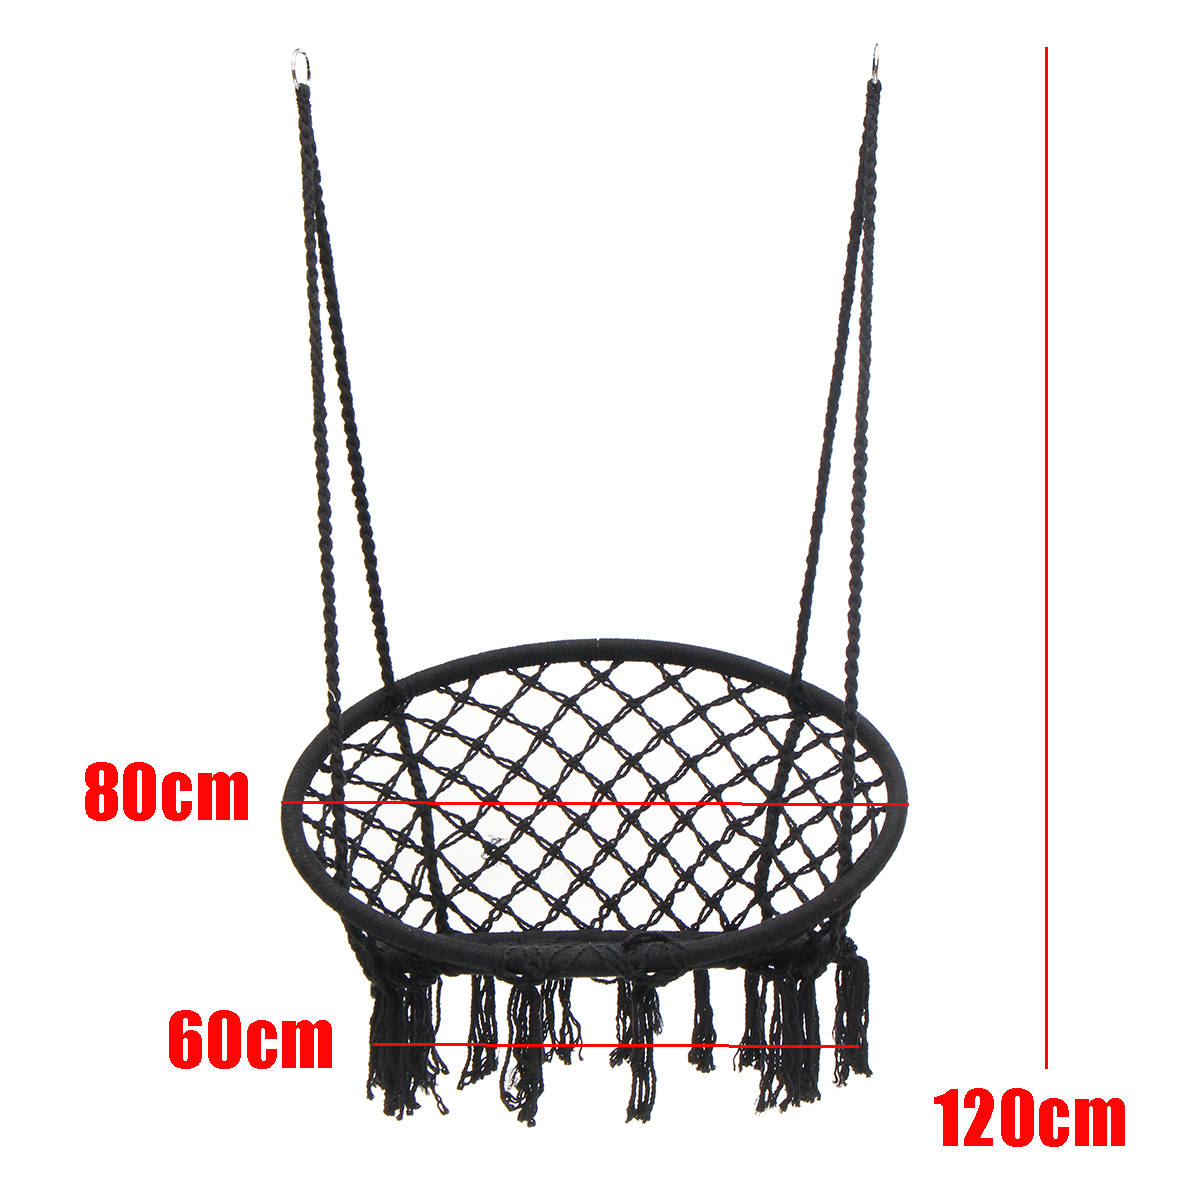 Round Hammock Adult Outdoor Indoor Dormitory Bedroom Swing Bed Hanging Single Chair with Tools Set